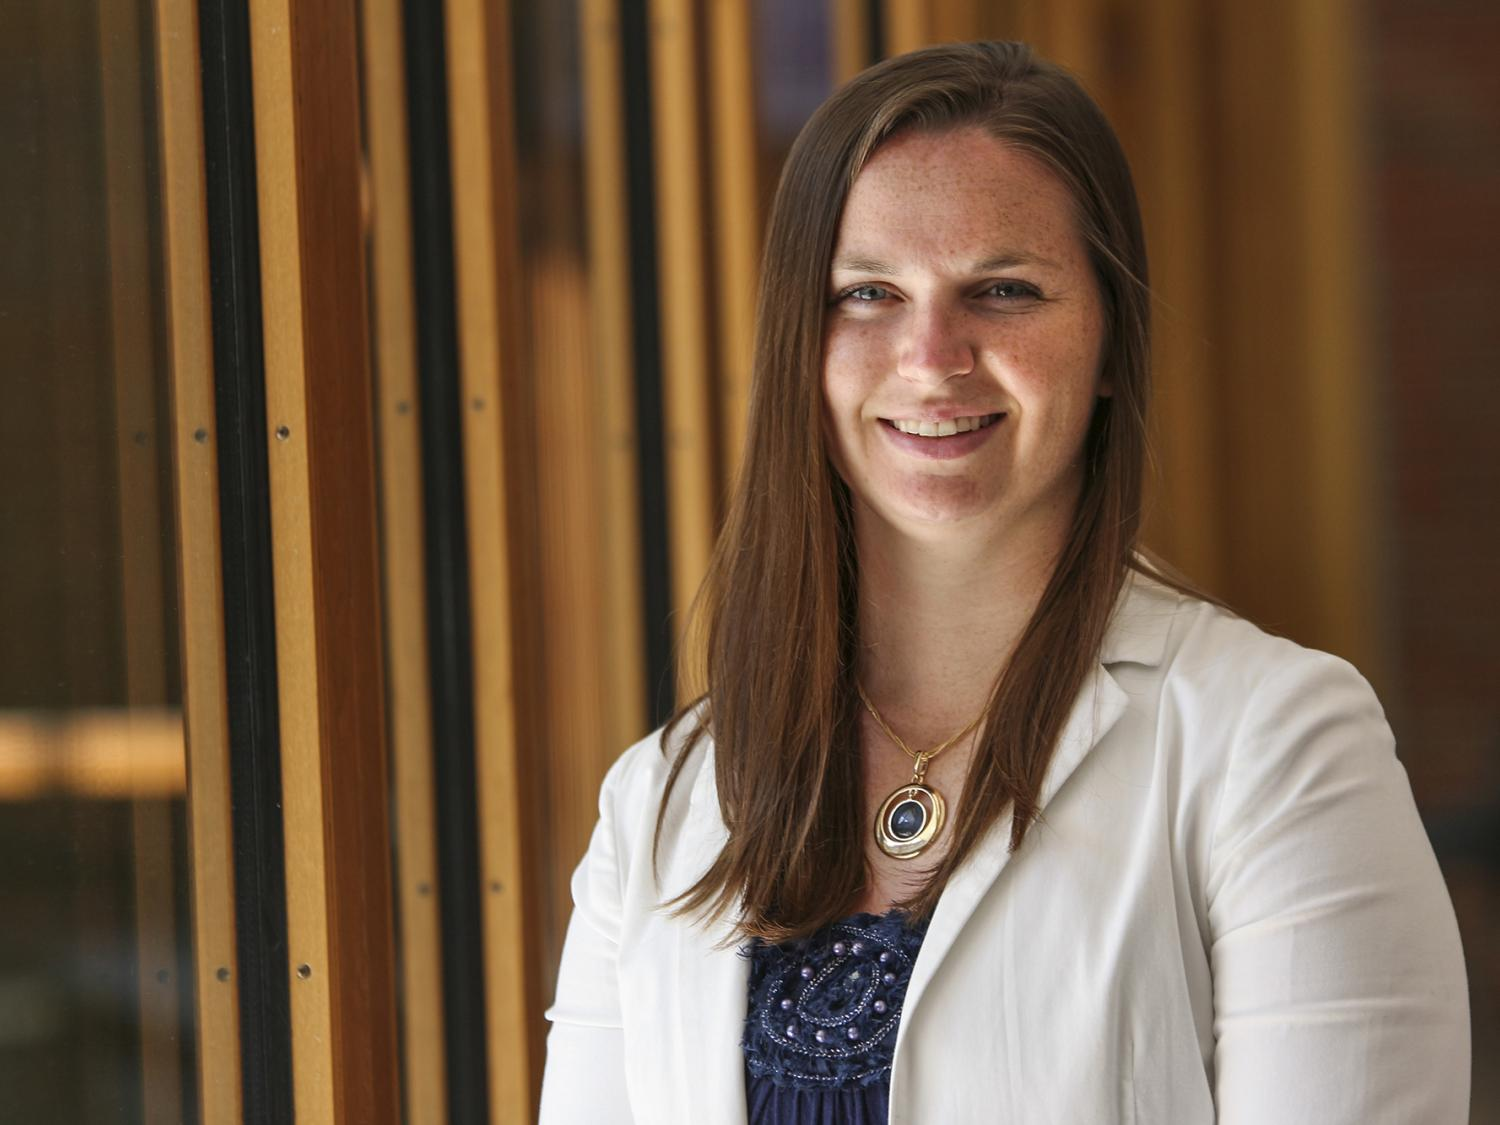 Penn State's Dickinson Law Student Erin Varley